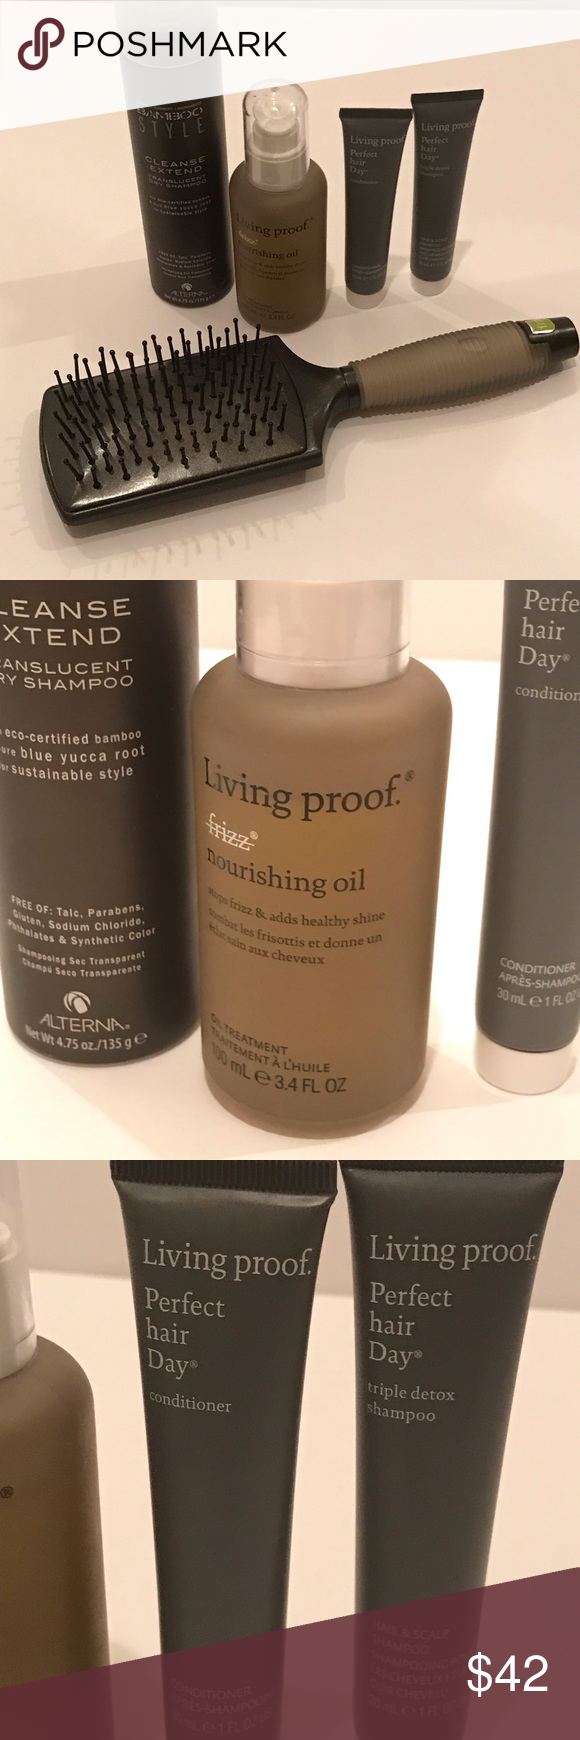 Living Proof 3pc Alterna Cleanse Extend Spray Frizz Free Sephora Makeup Frizz Free Hair